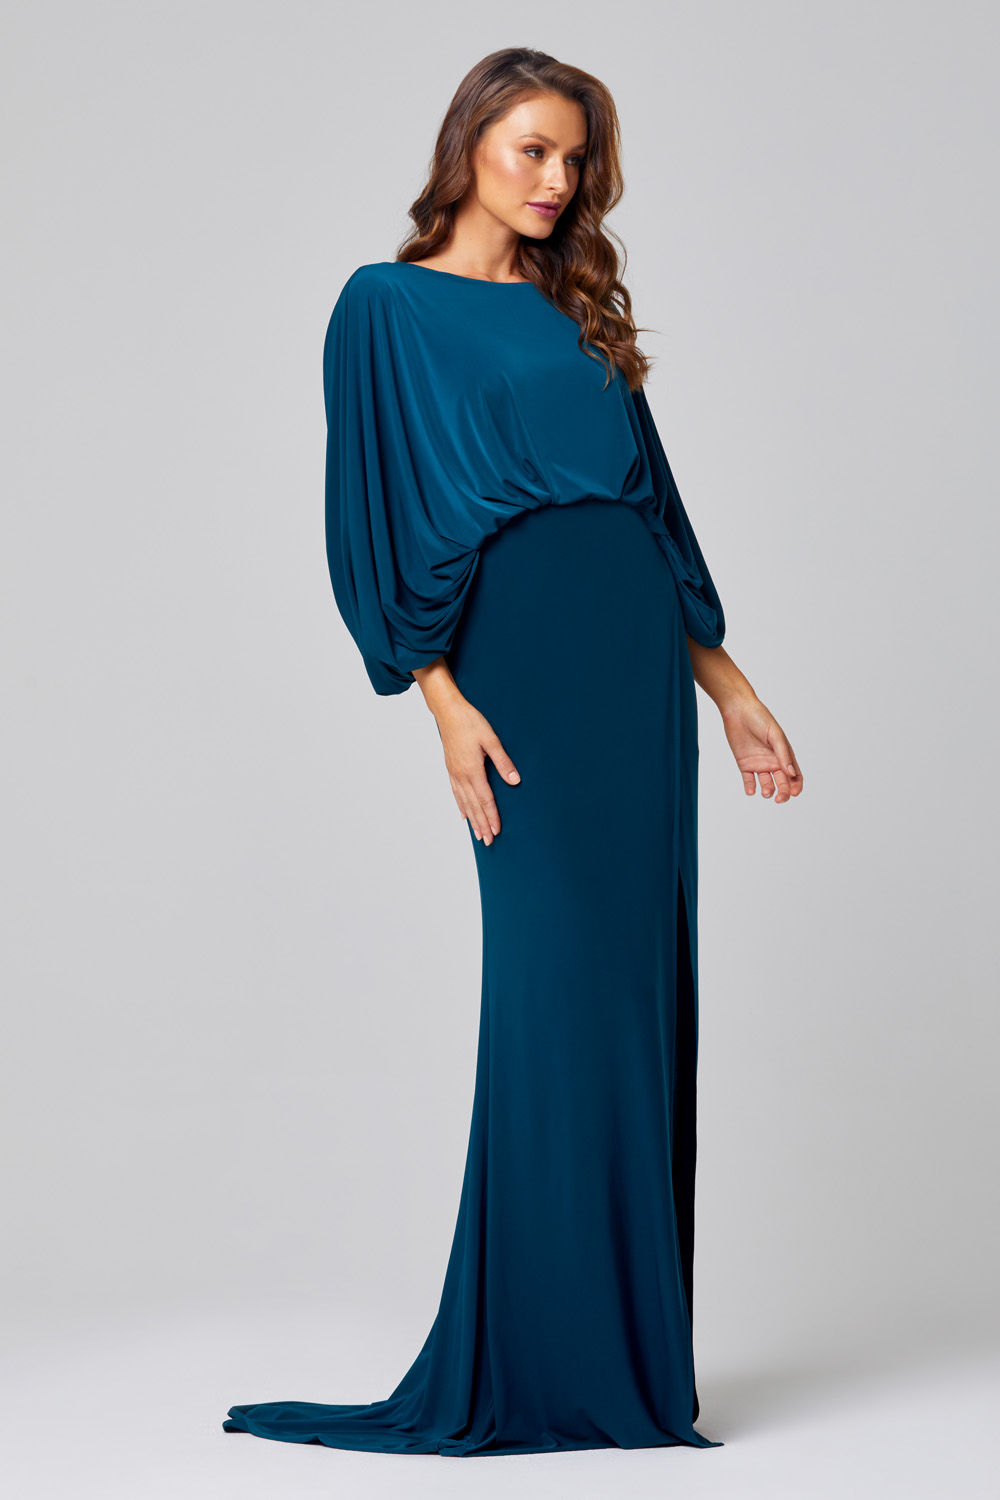 Cleo Cape Sleeve Bridesmaid Dress – TO845 Side